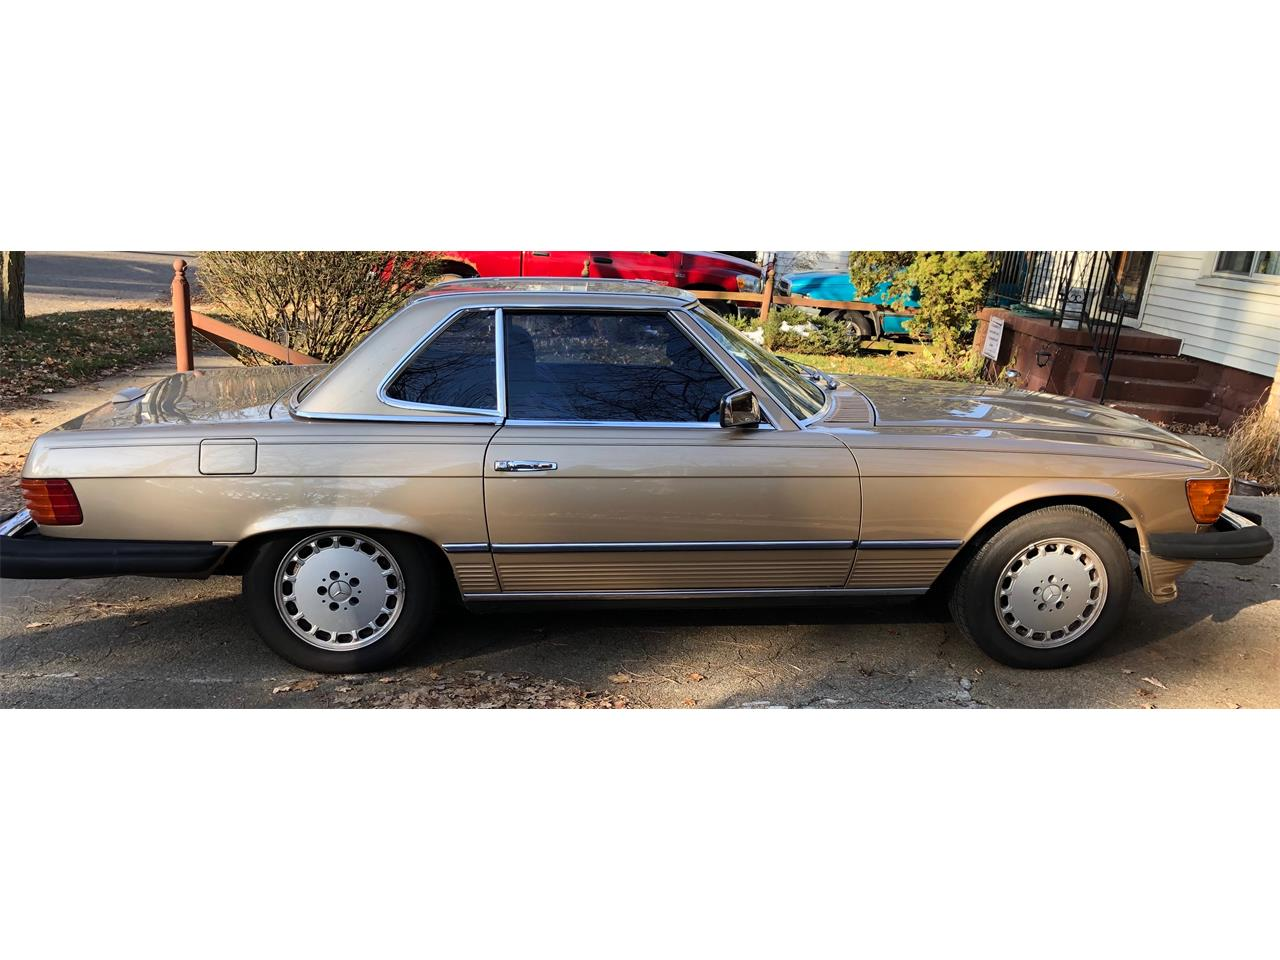 1983 Mercedes-Benz 380SL (CC-1174394) for sale in Albion, Michigan